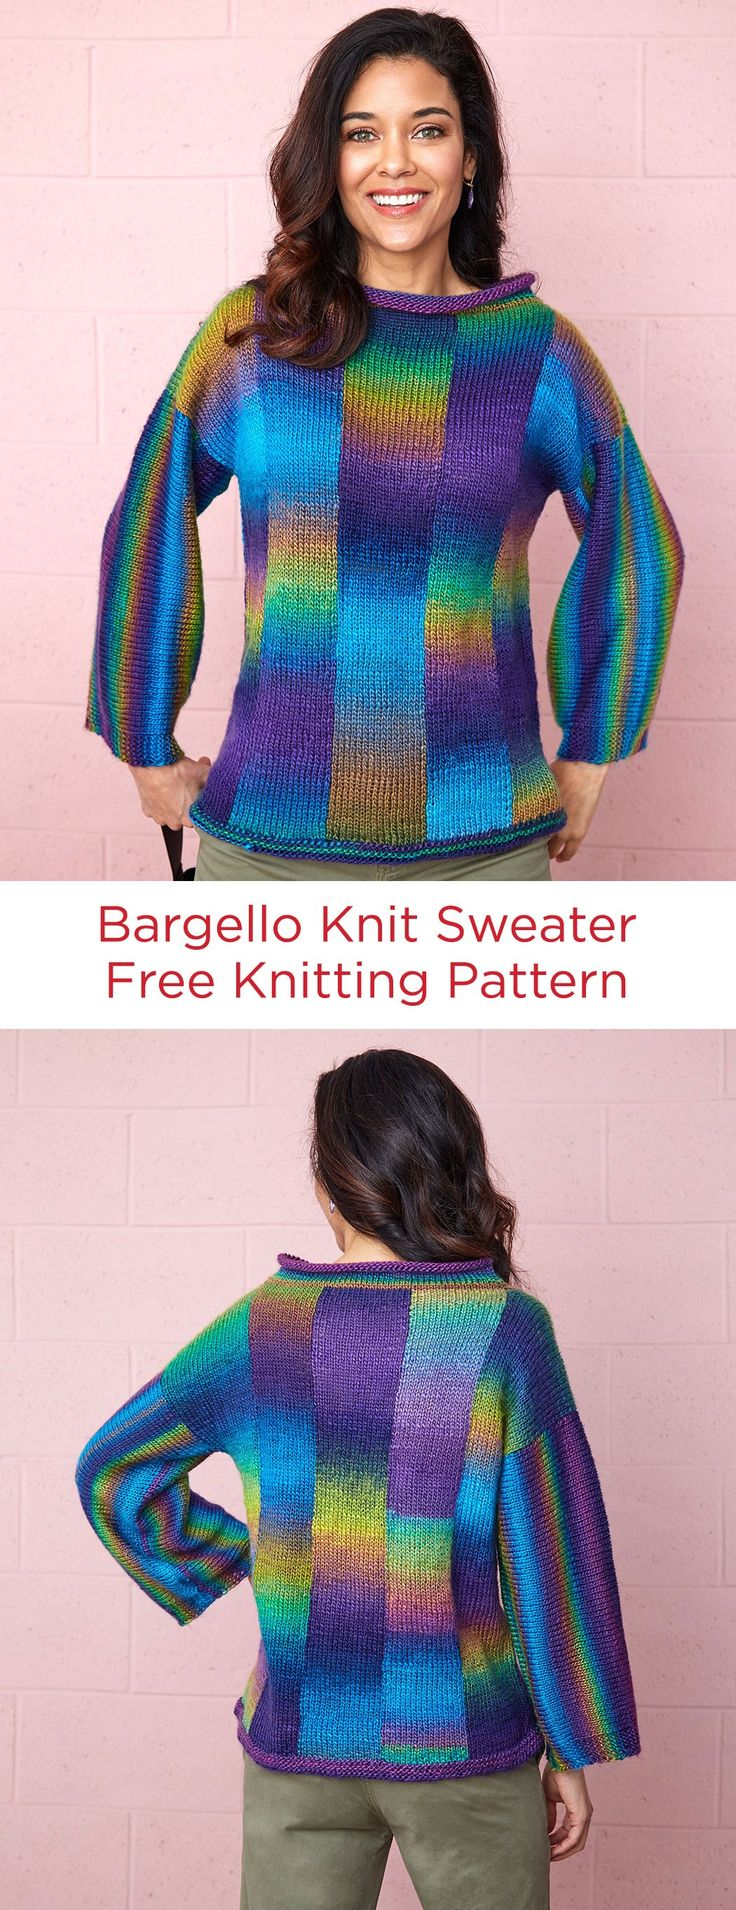 328 best images about Color Inspires on Pinterest Free pattern, Daniel o